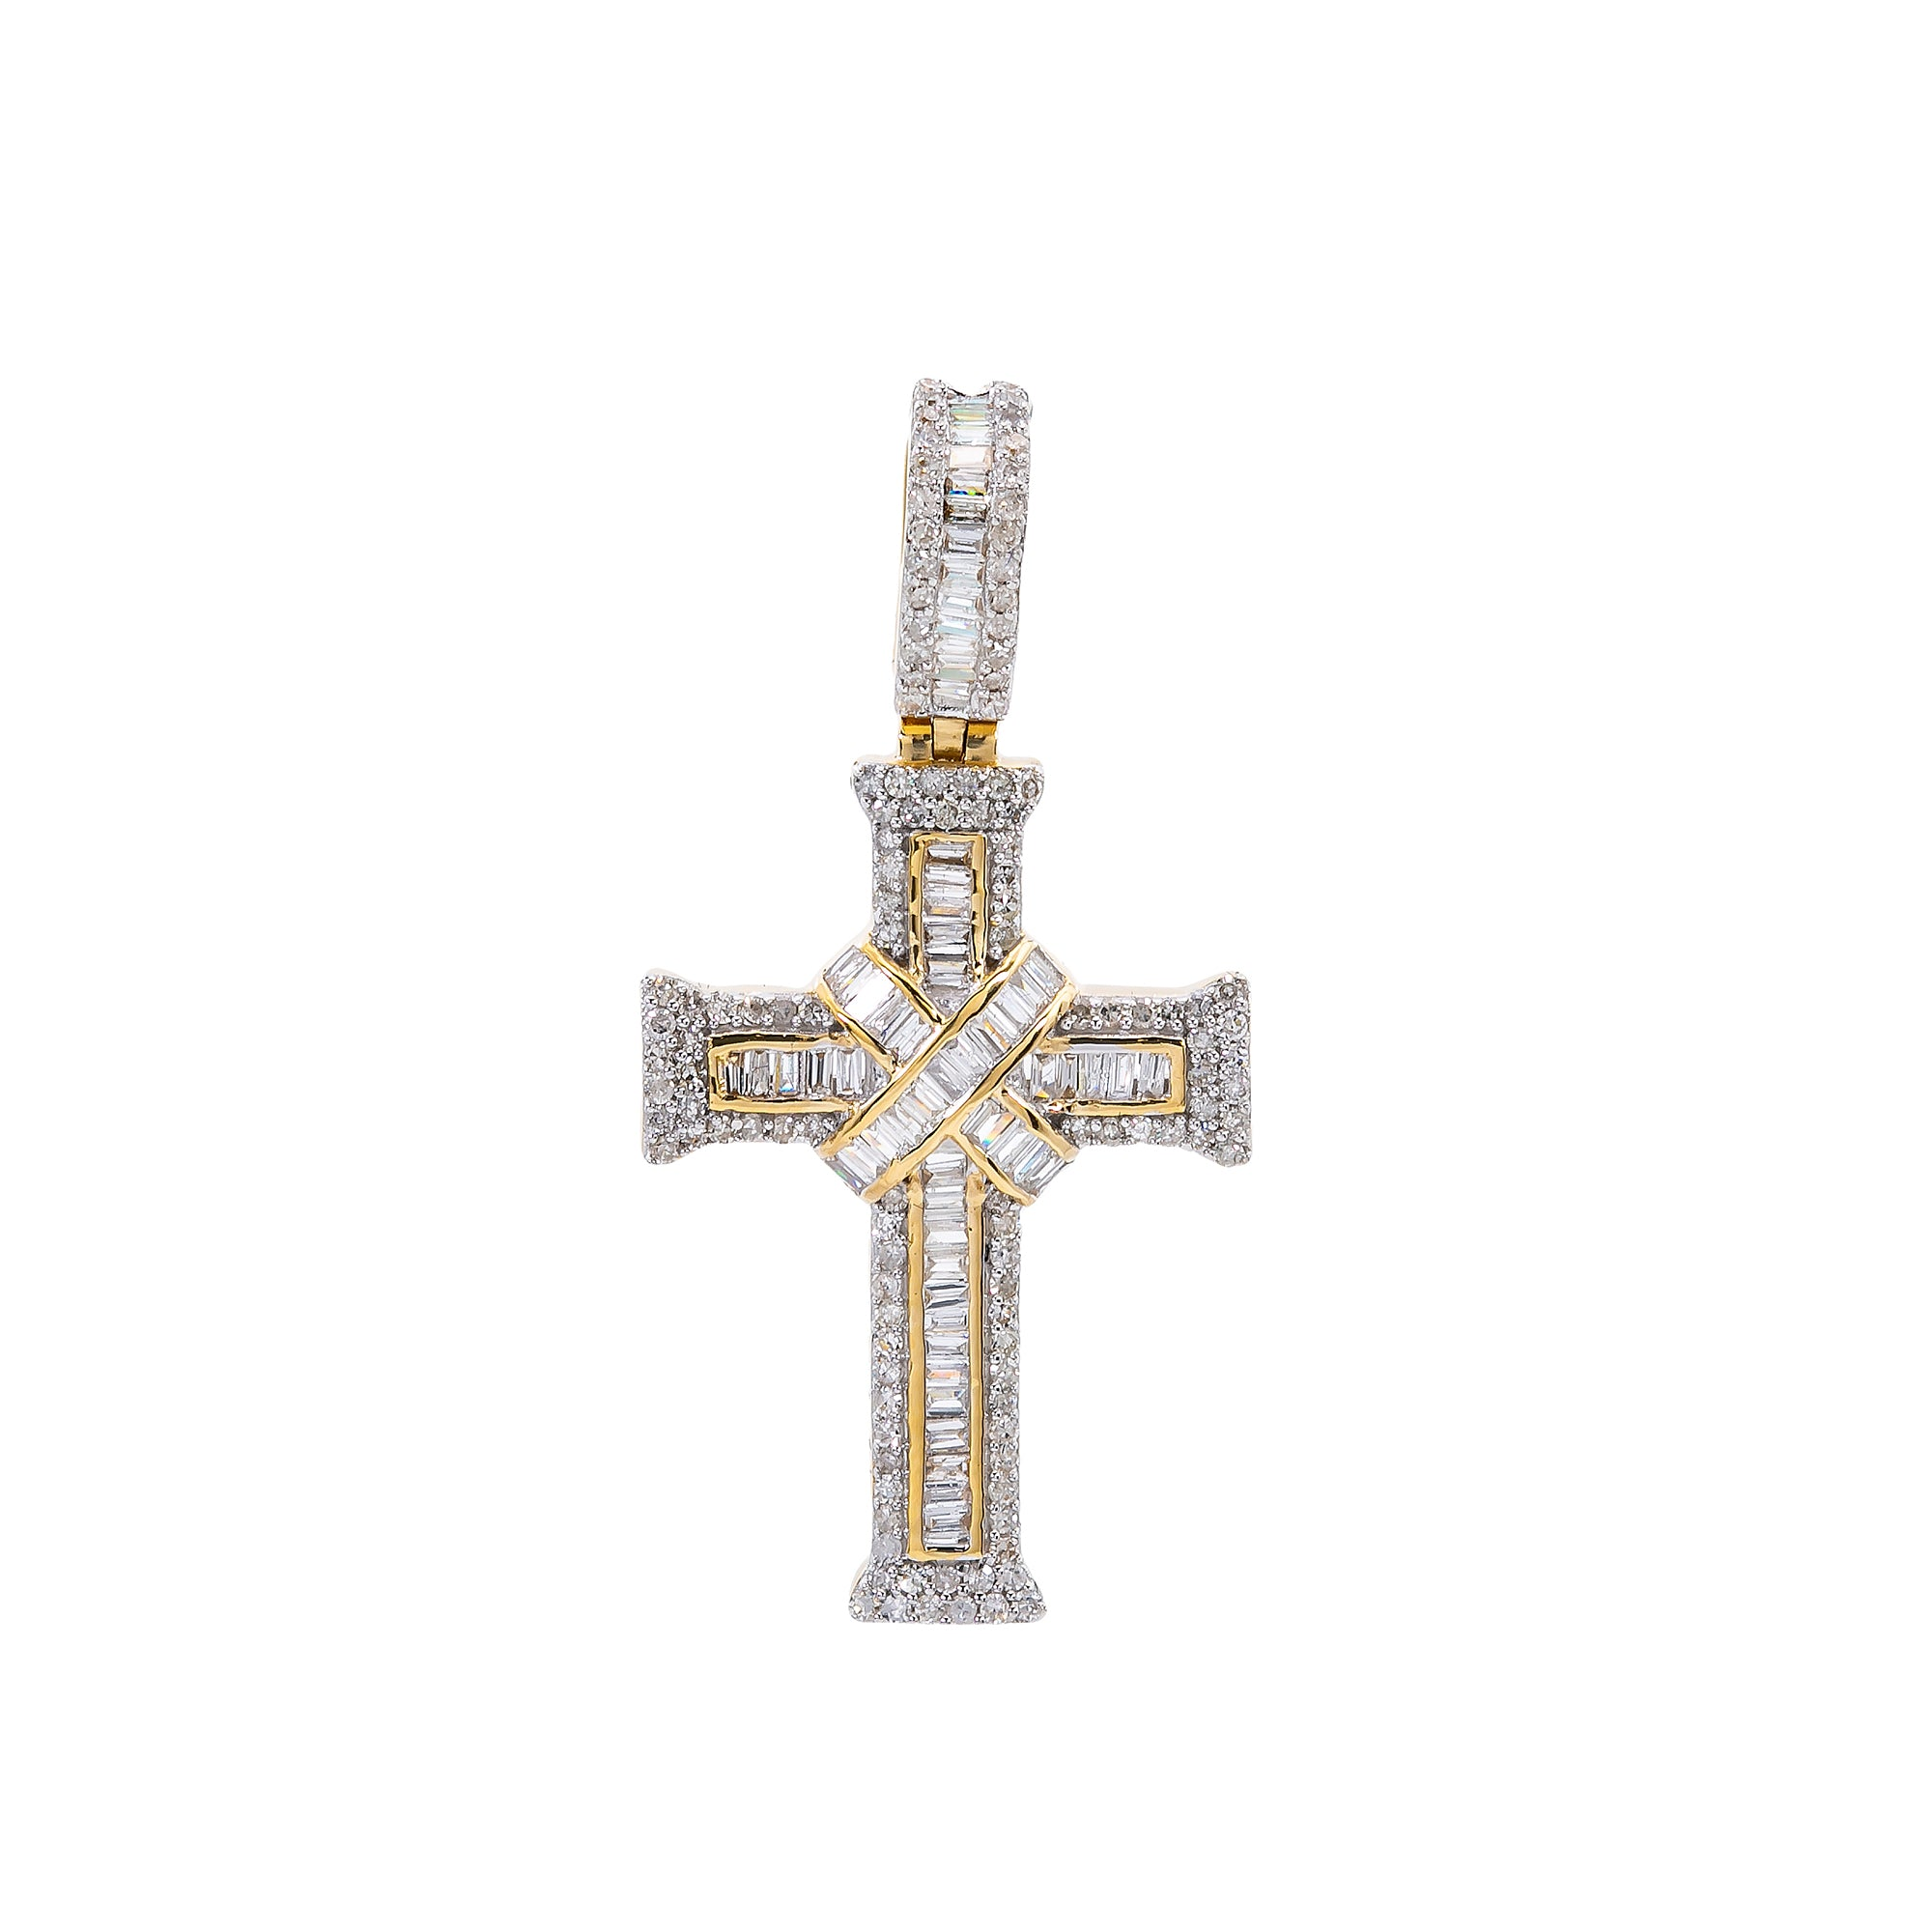 Unisex 14K Yellow Gold Cross Pendant with 0.69 CT Diamonds